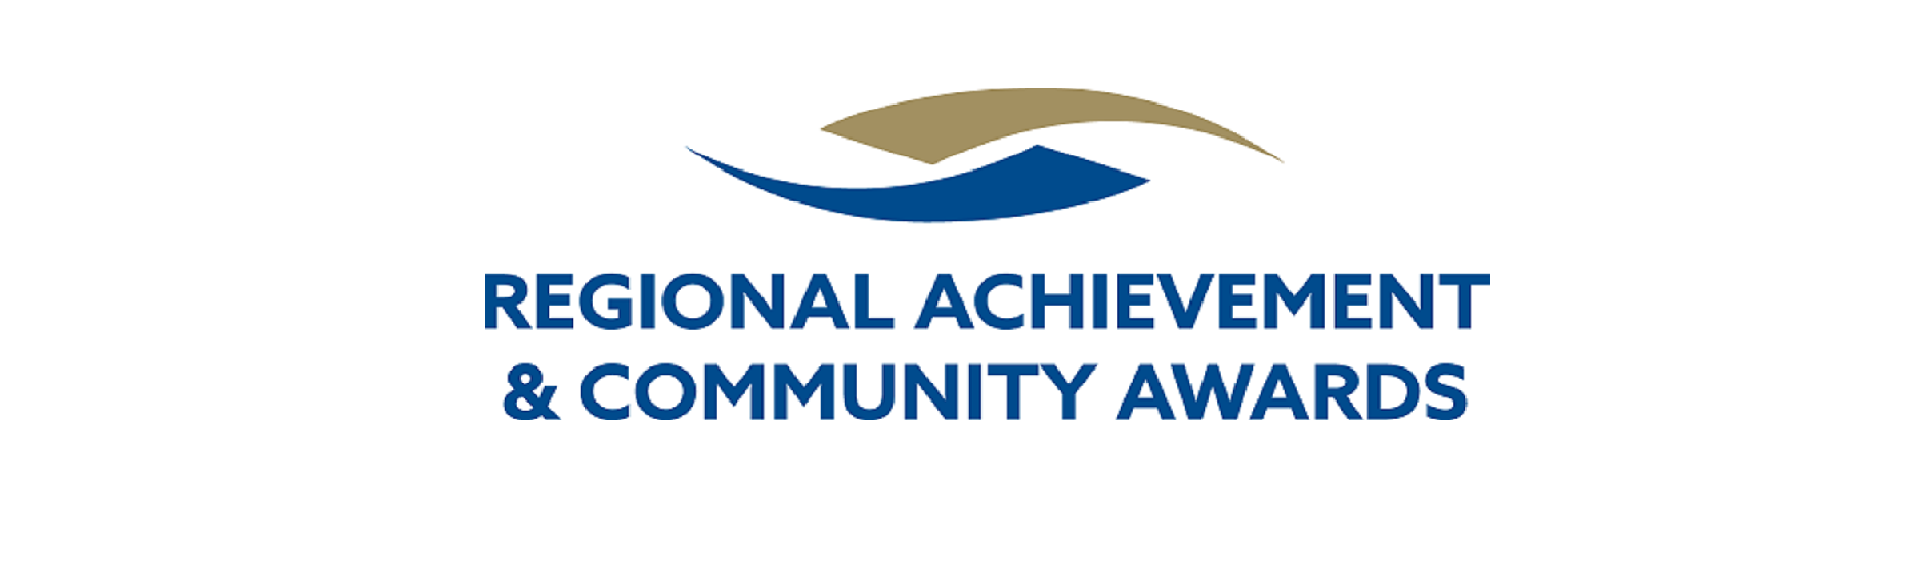 Regional Achievement & Community Awards